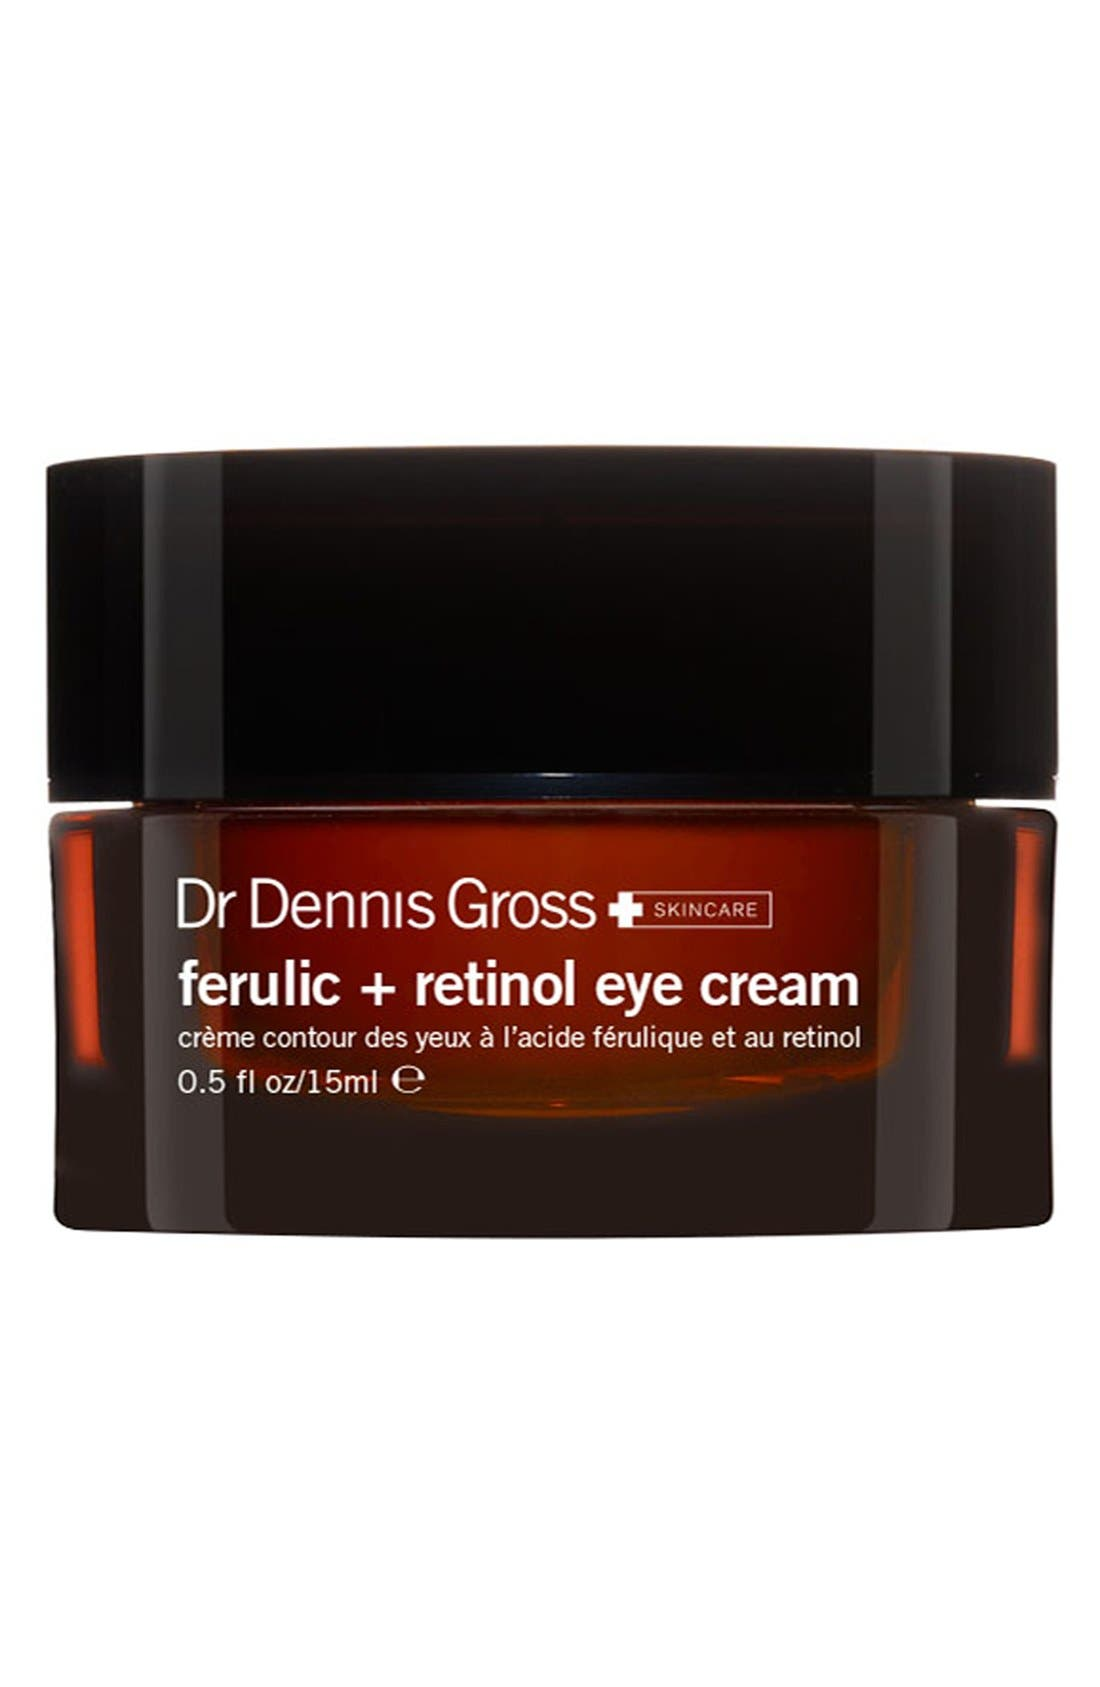 Dr. Dennis Gross Skincare Ferulic + Retinol Eye Cream